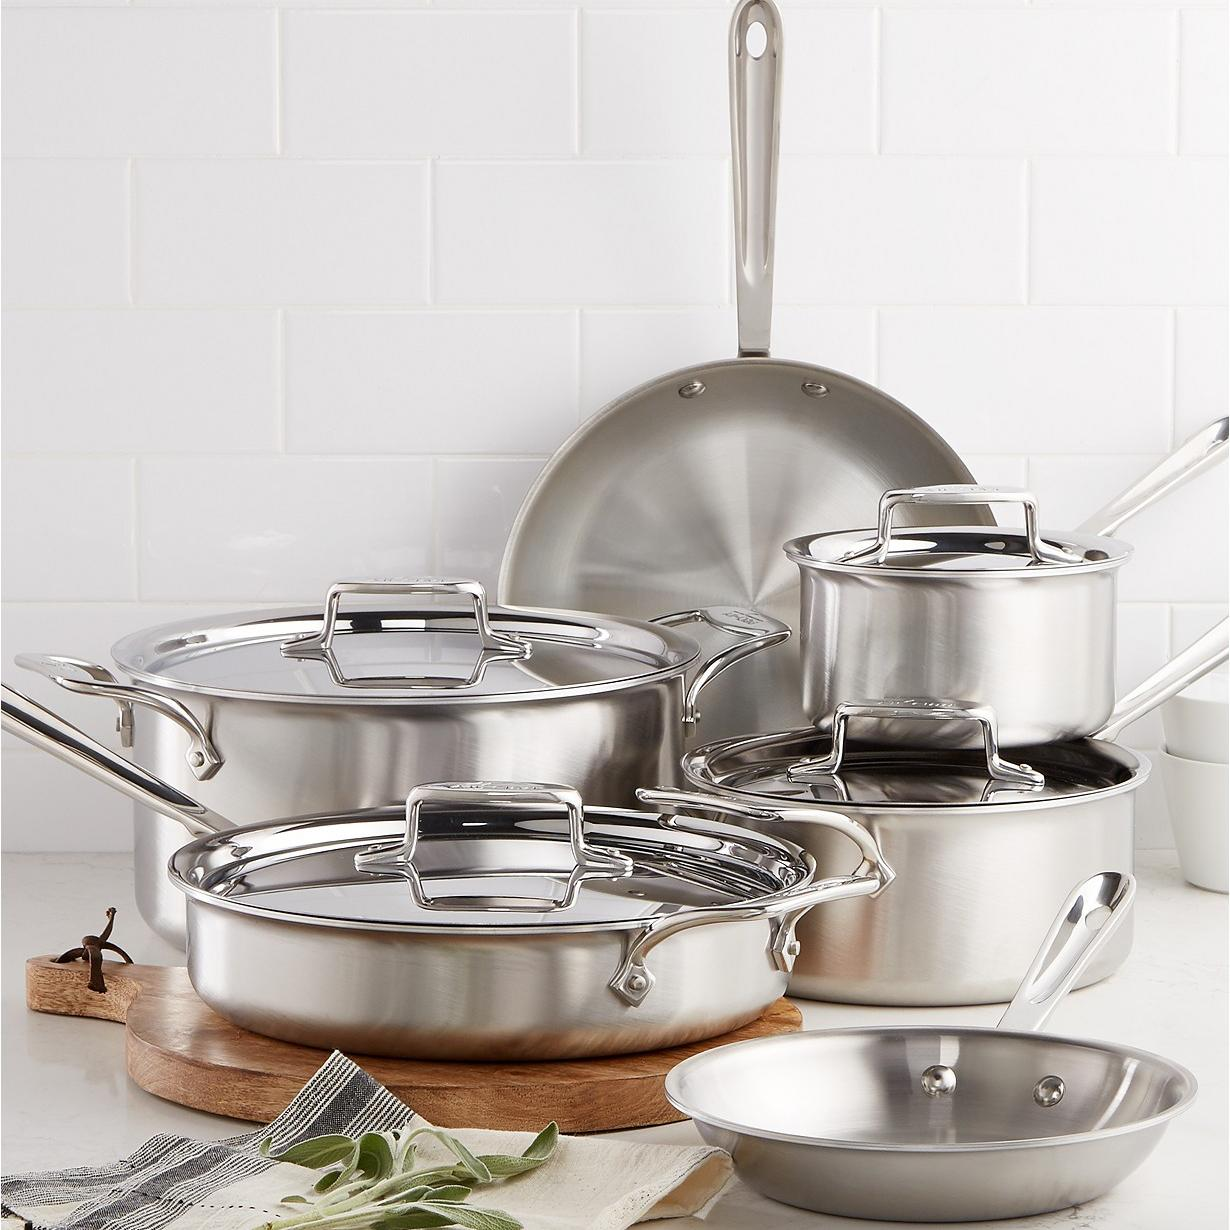 10-Piece All-Clad D5 Stainless Steel Cookware Set with Pot Holder